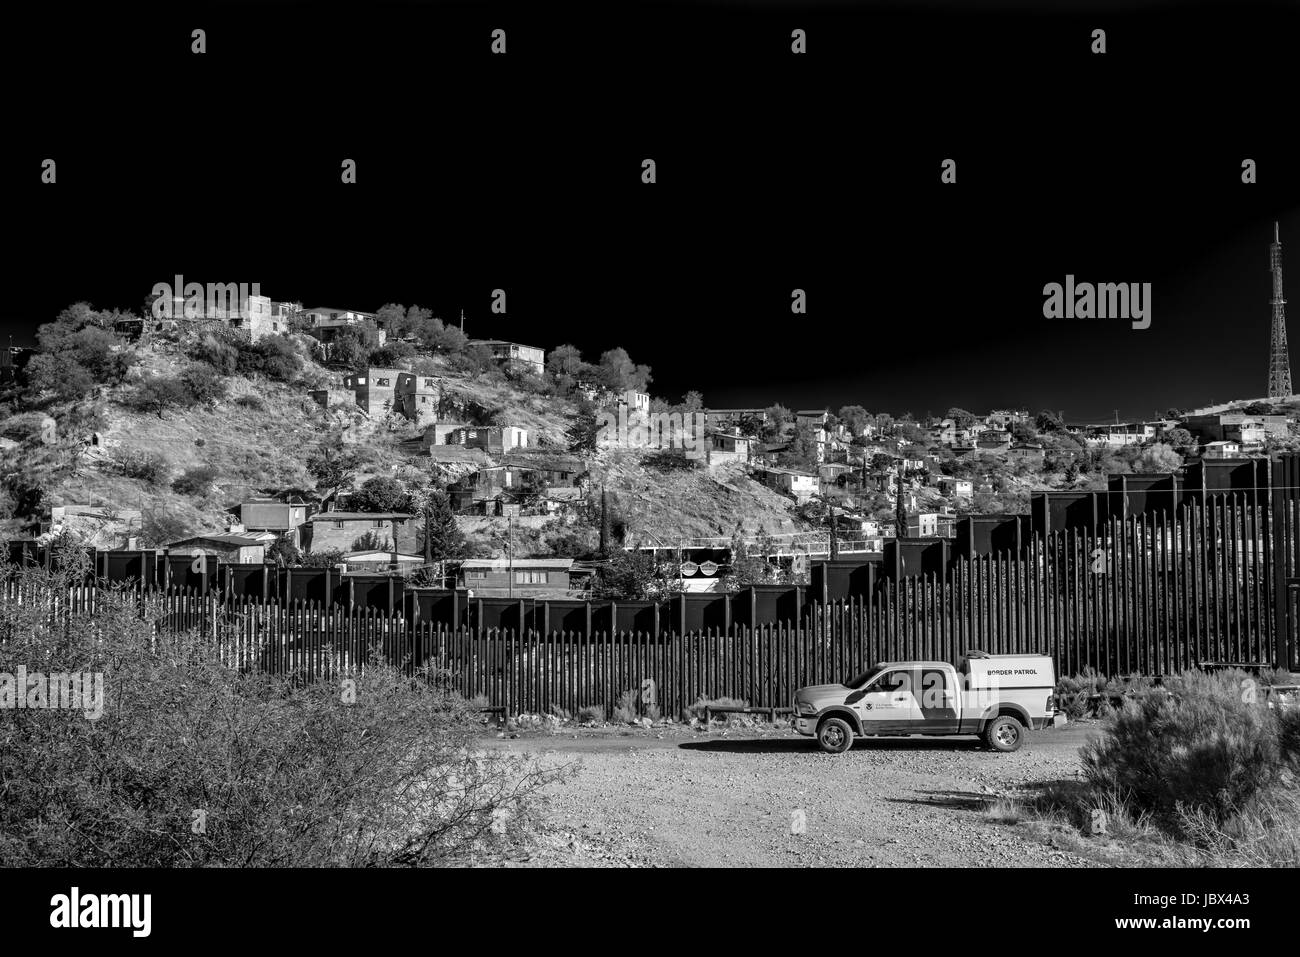 Border patrol in front of fence dividing USA and Mexico in Nogales, Arizona, USA; a matter of current politics and - Stock Image